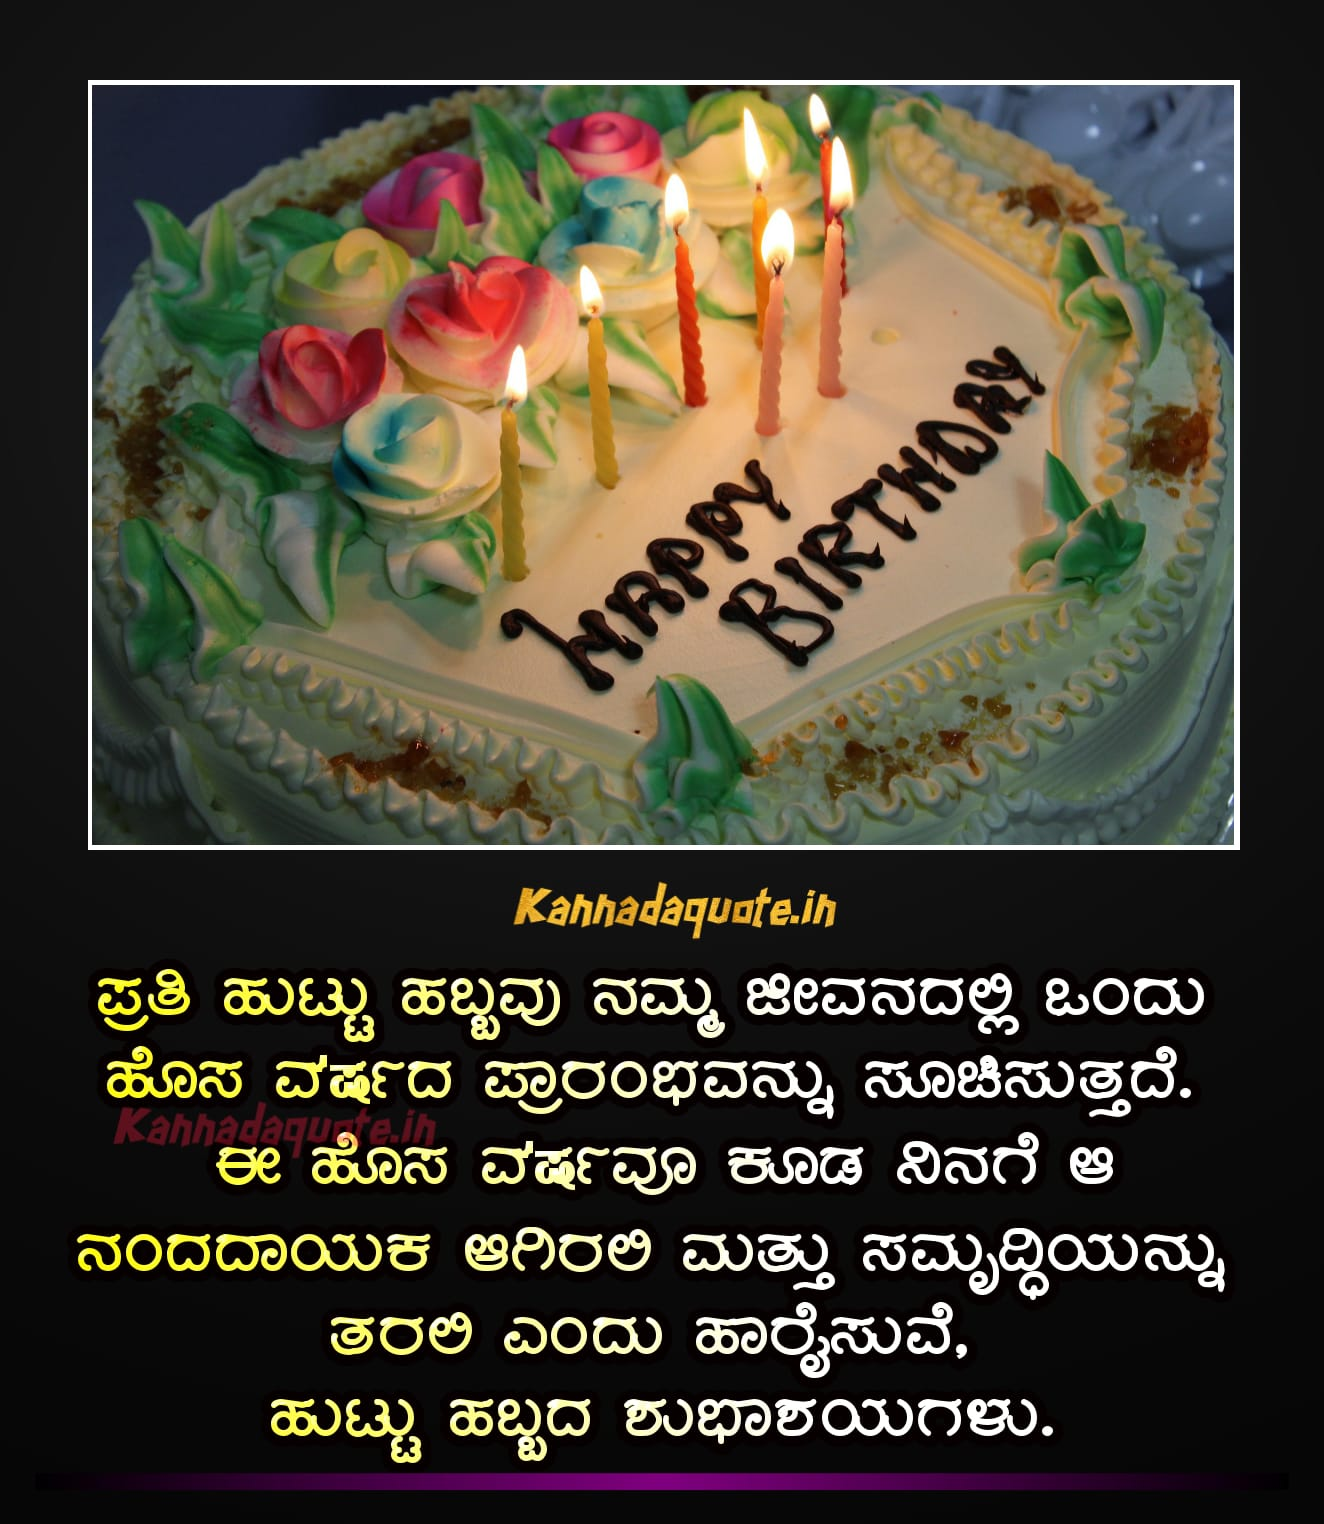 40 Happy Birthday Wishes In Kannada Language 2021 Just copy kannada birthday quotes and messages from internet to create happy birthday wishes for friends. 40 happy birthday wishes in kannada language 2021